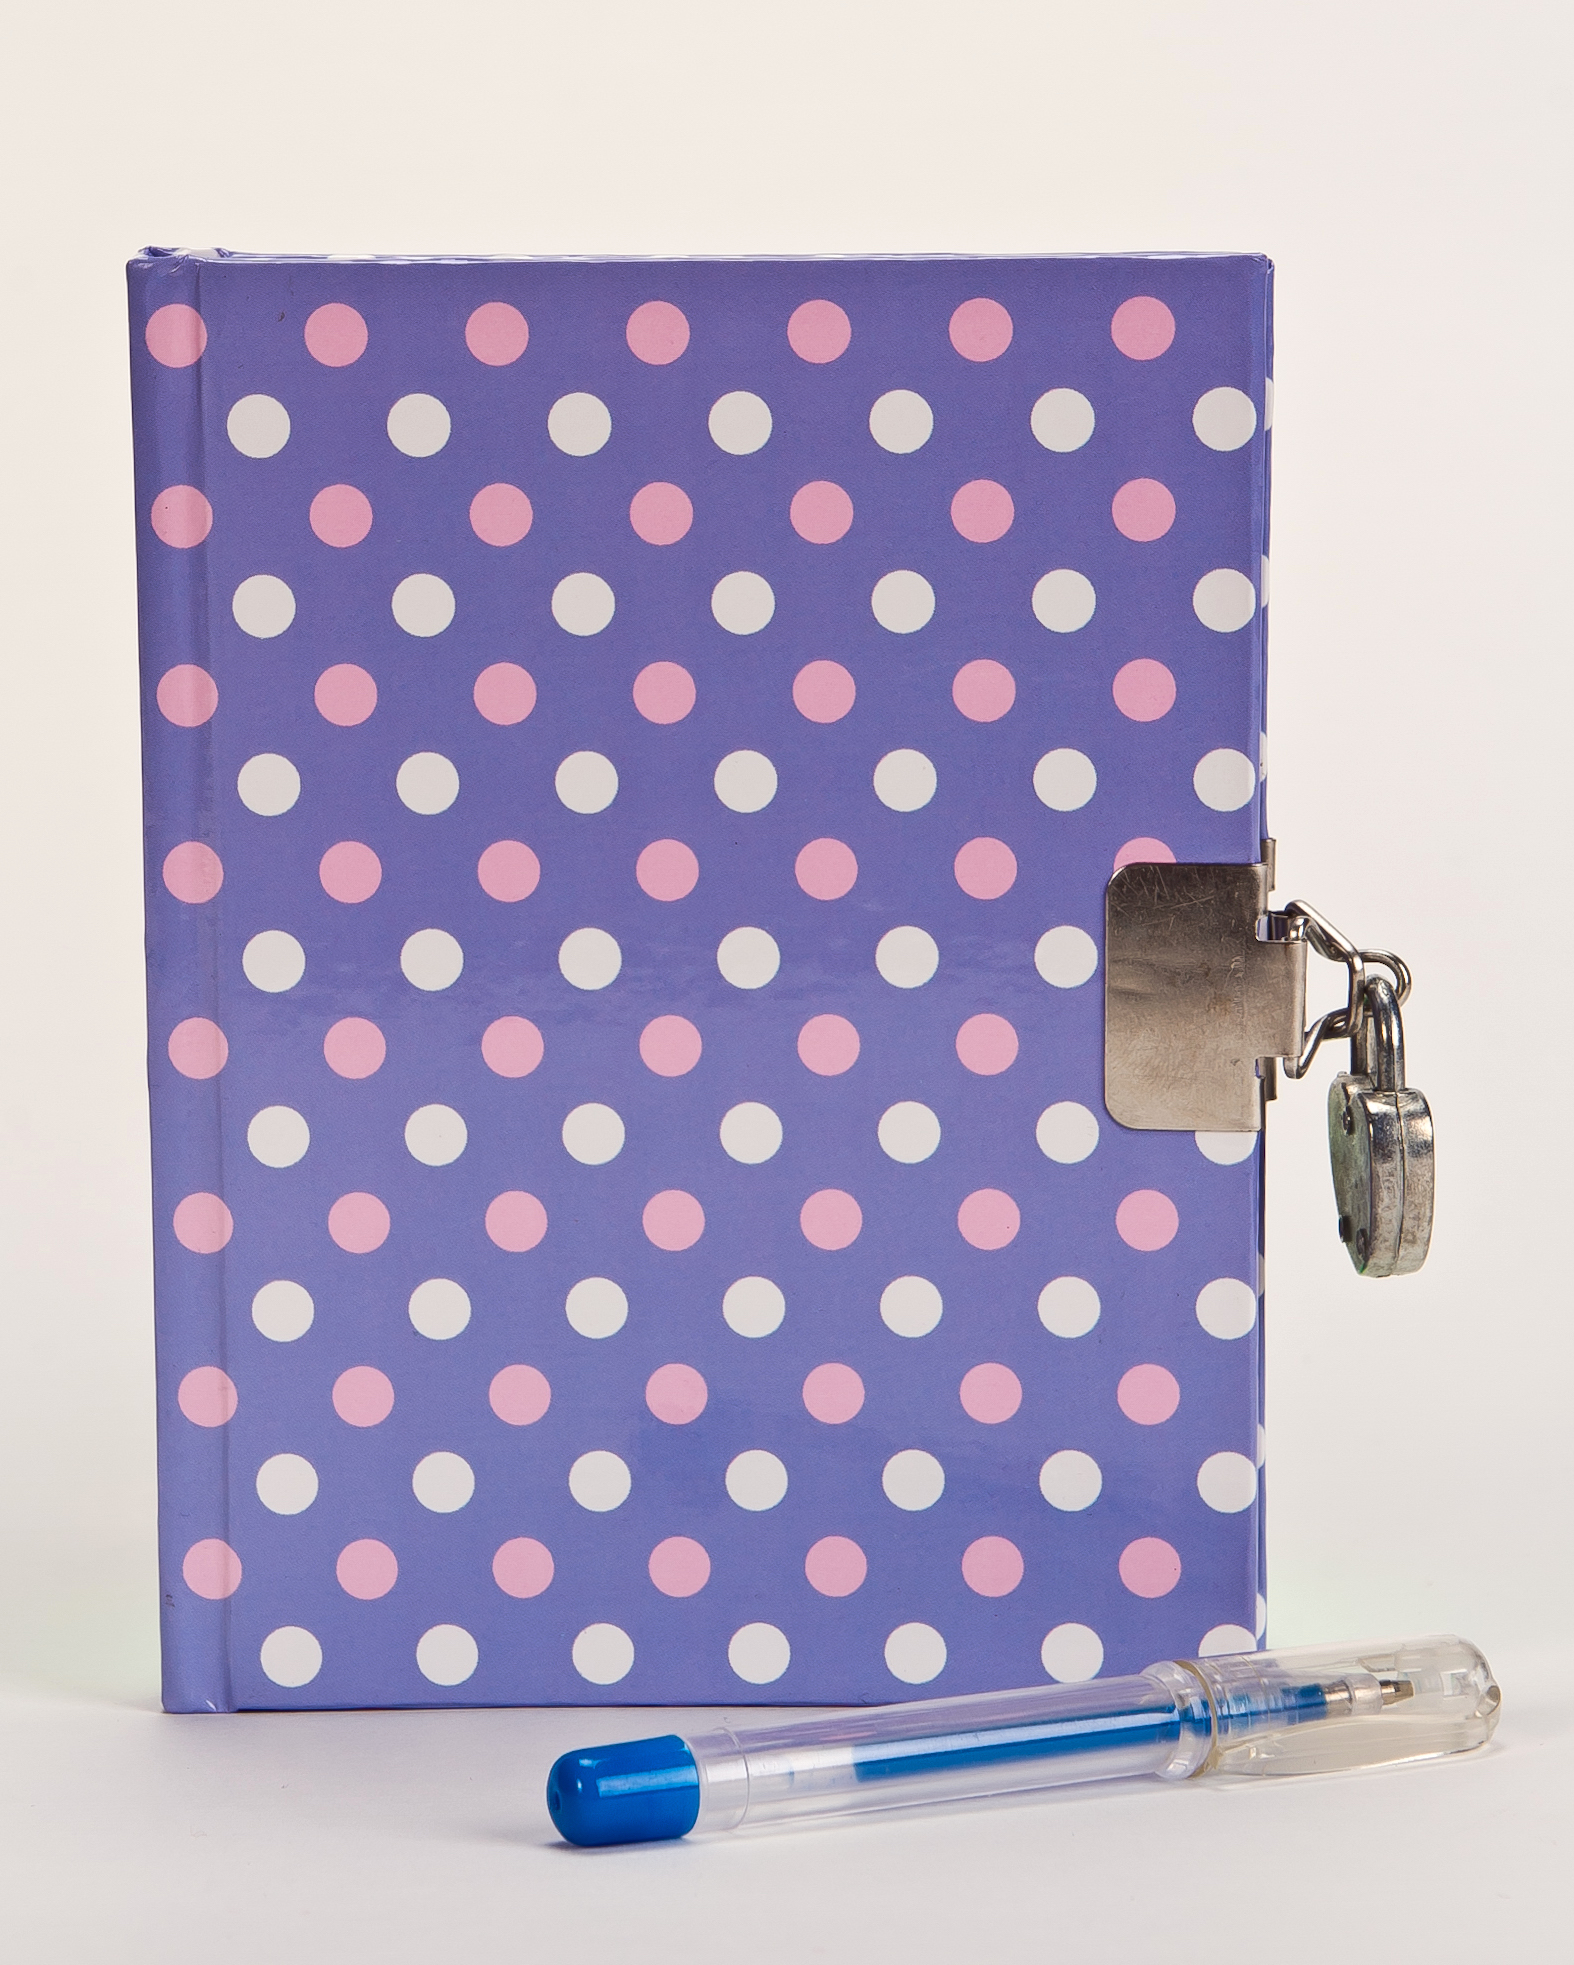 Polka Dot Journal and Pen